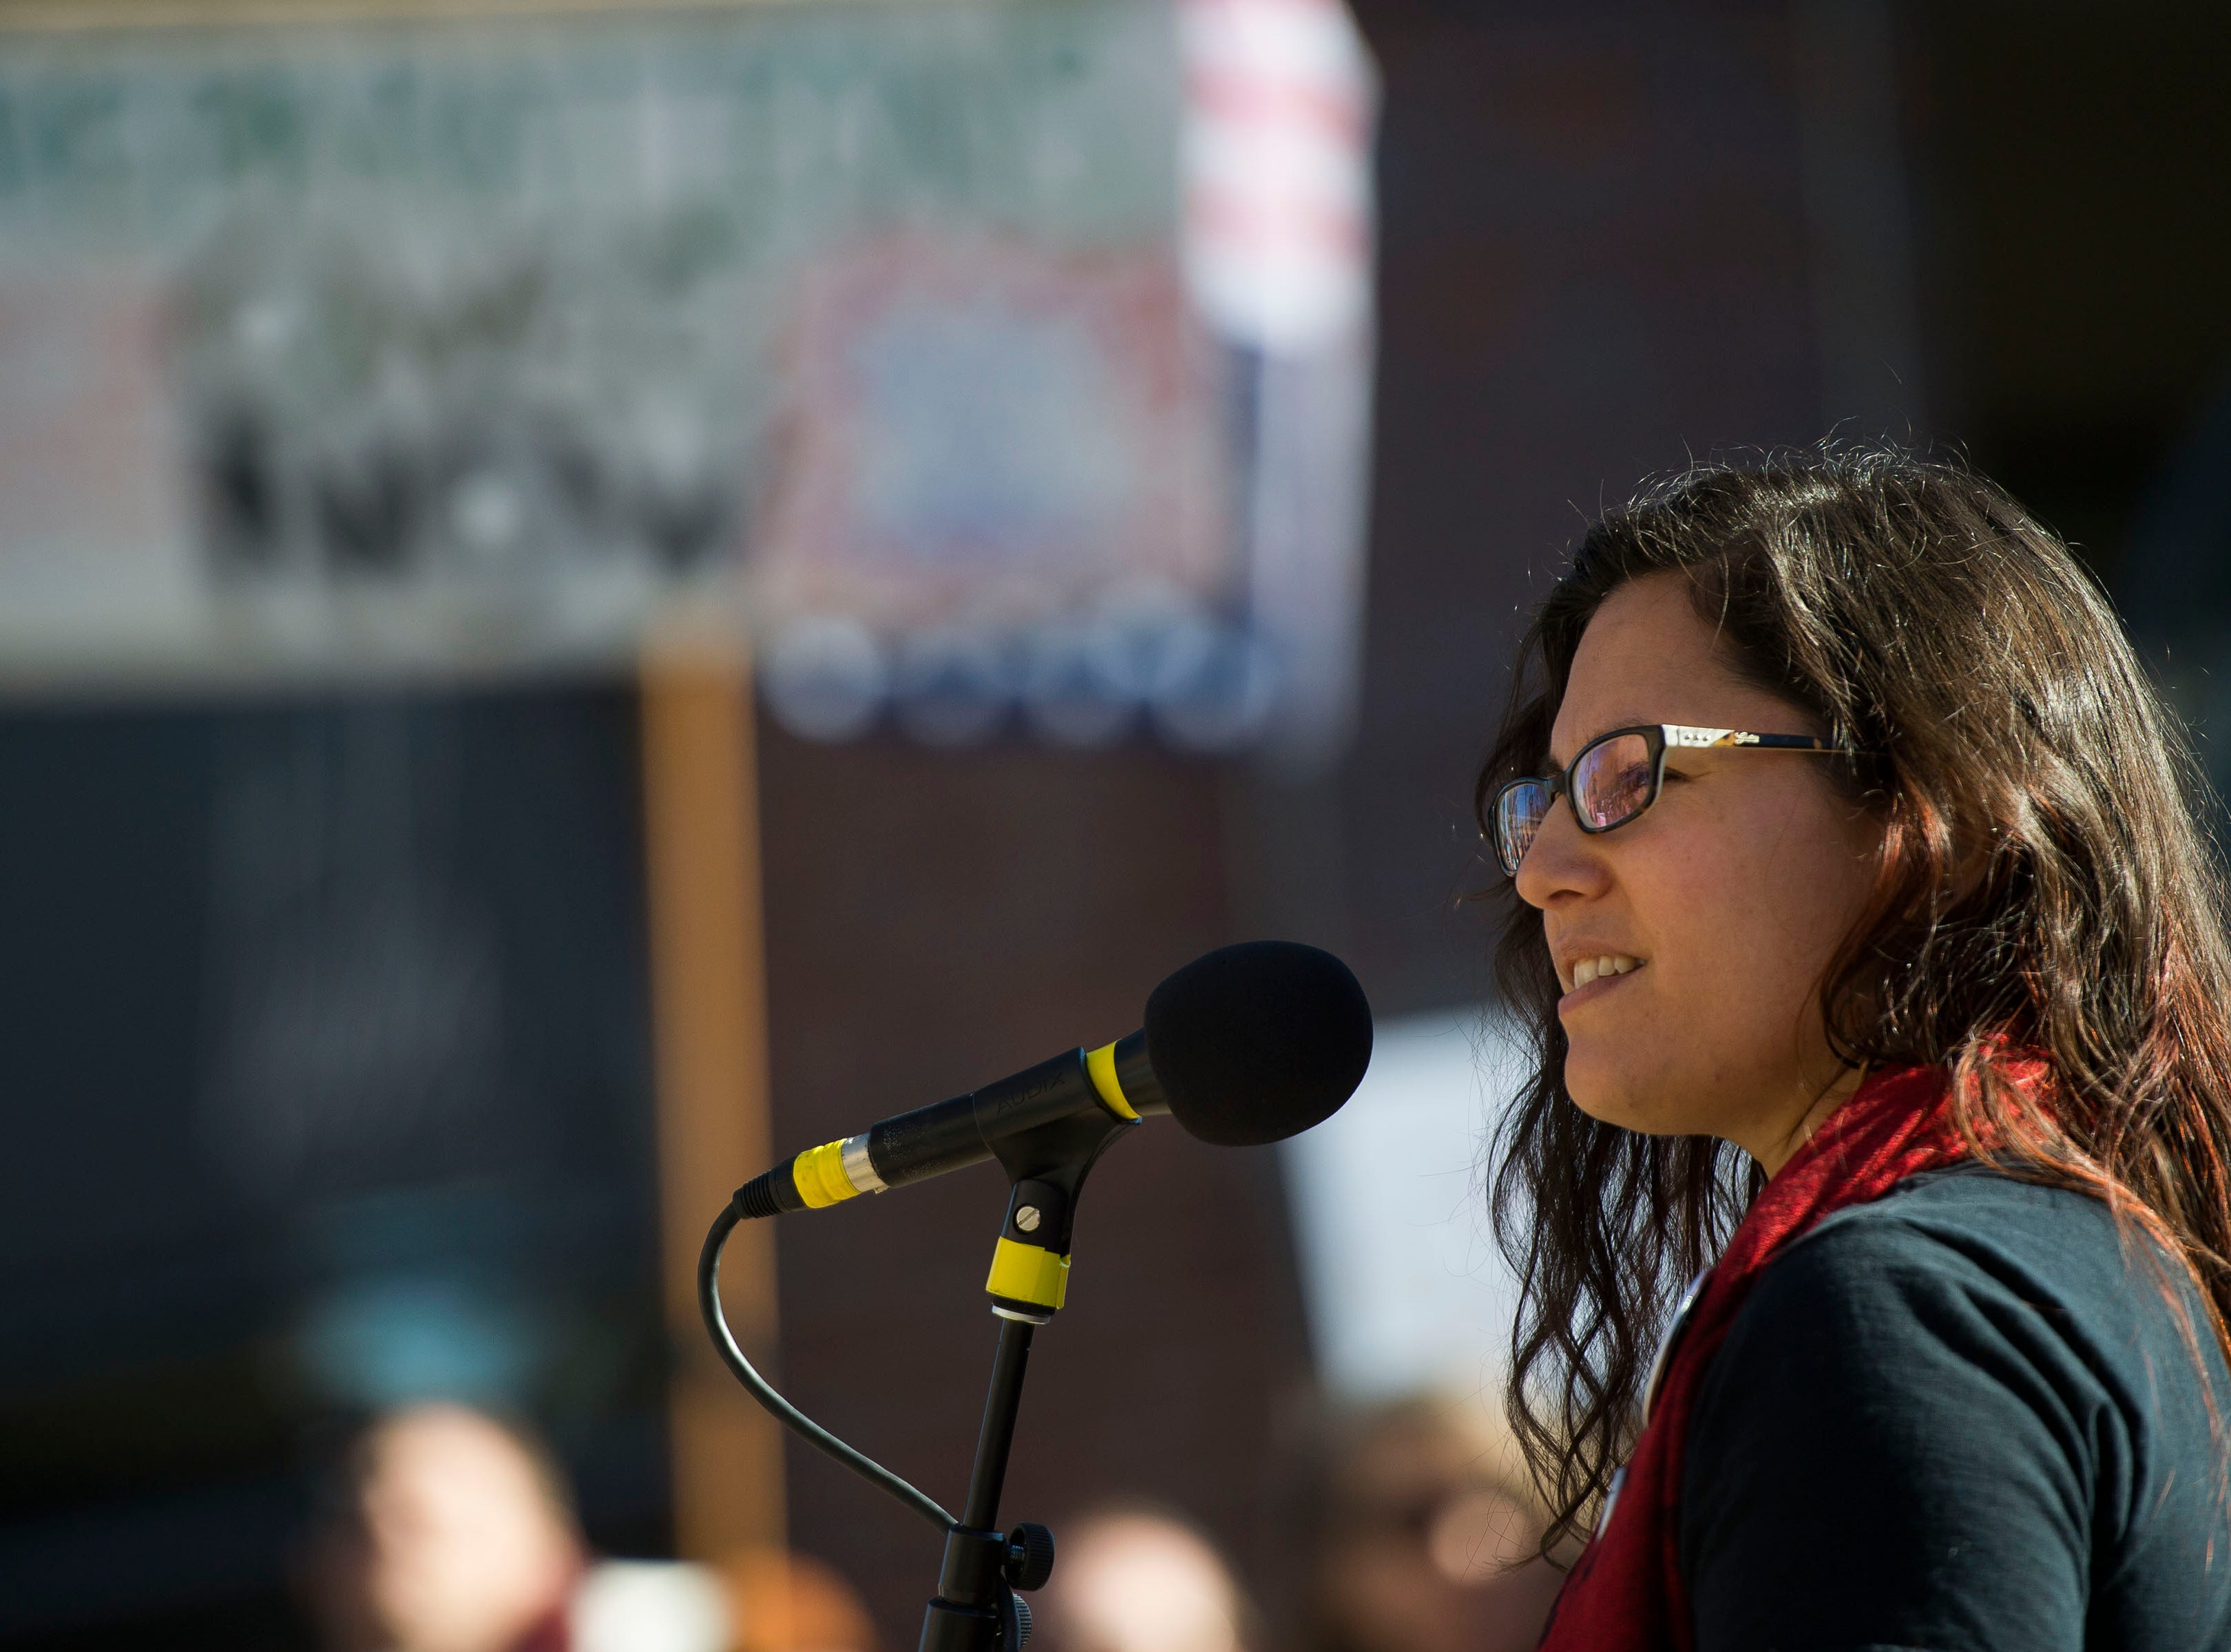 March leader Dominique David-Chavez gives a speech to the audience assembled in Old Town Square during the Dr. Martin Luther King, Jr. March & Celebration on Monday, Jan. 21, 2019, in Fort Collins, Colo.